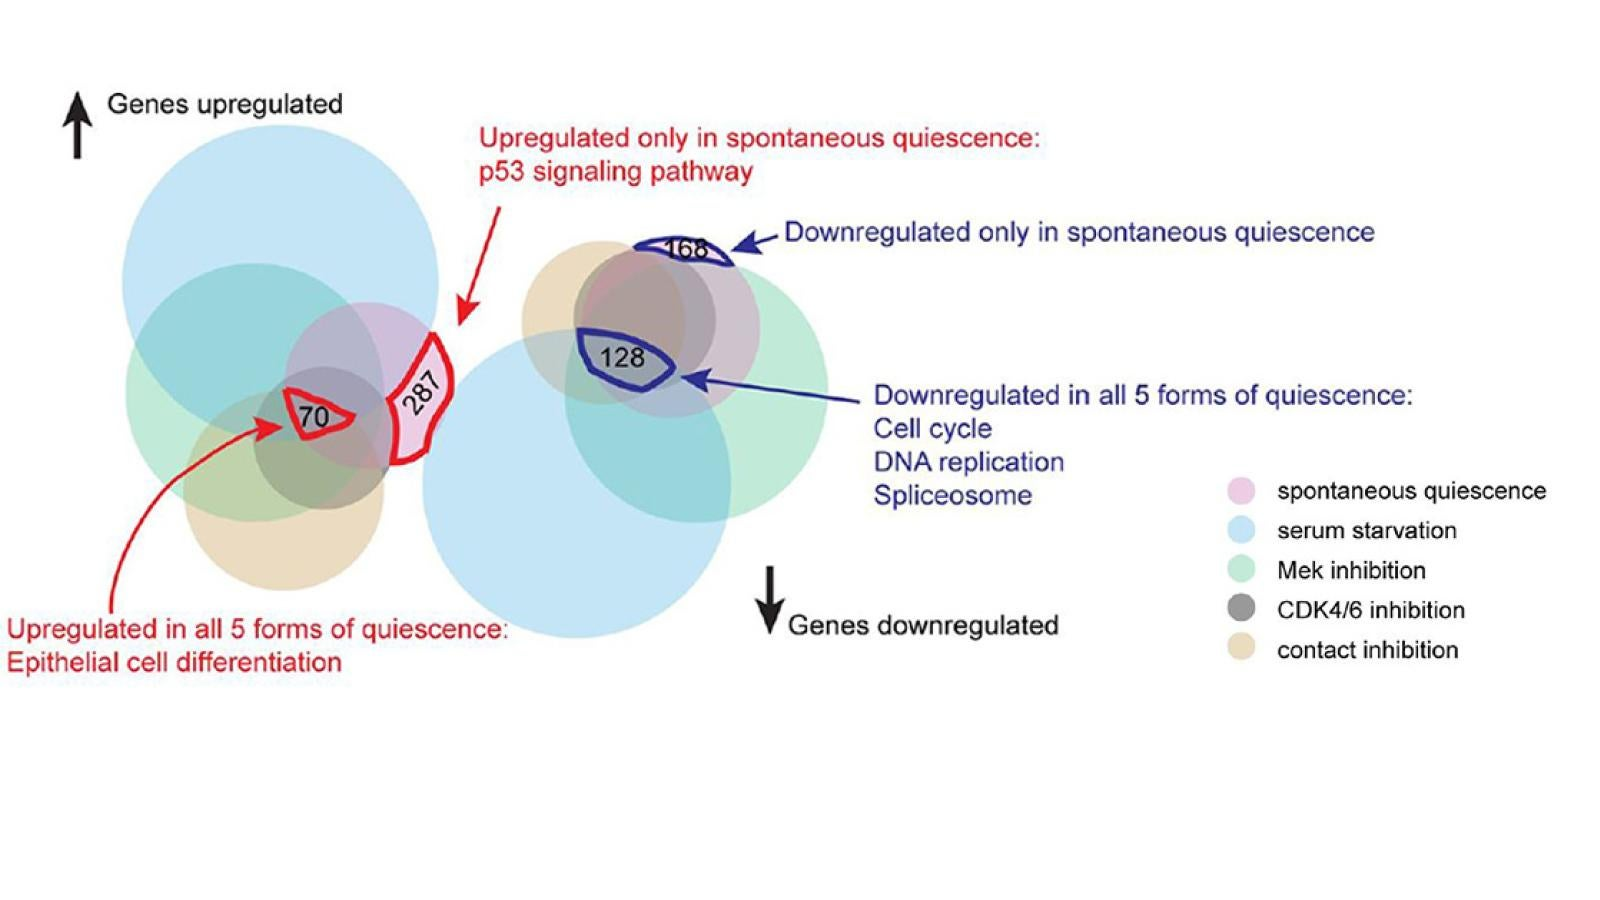 Venn diagram of gene sets differentially regulated in five forms of quiescence. Note: the area of each set does not strictly correlate with the number of genes contained within.